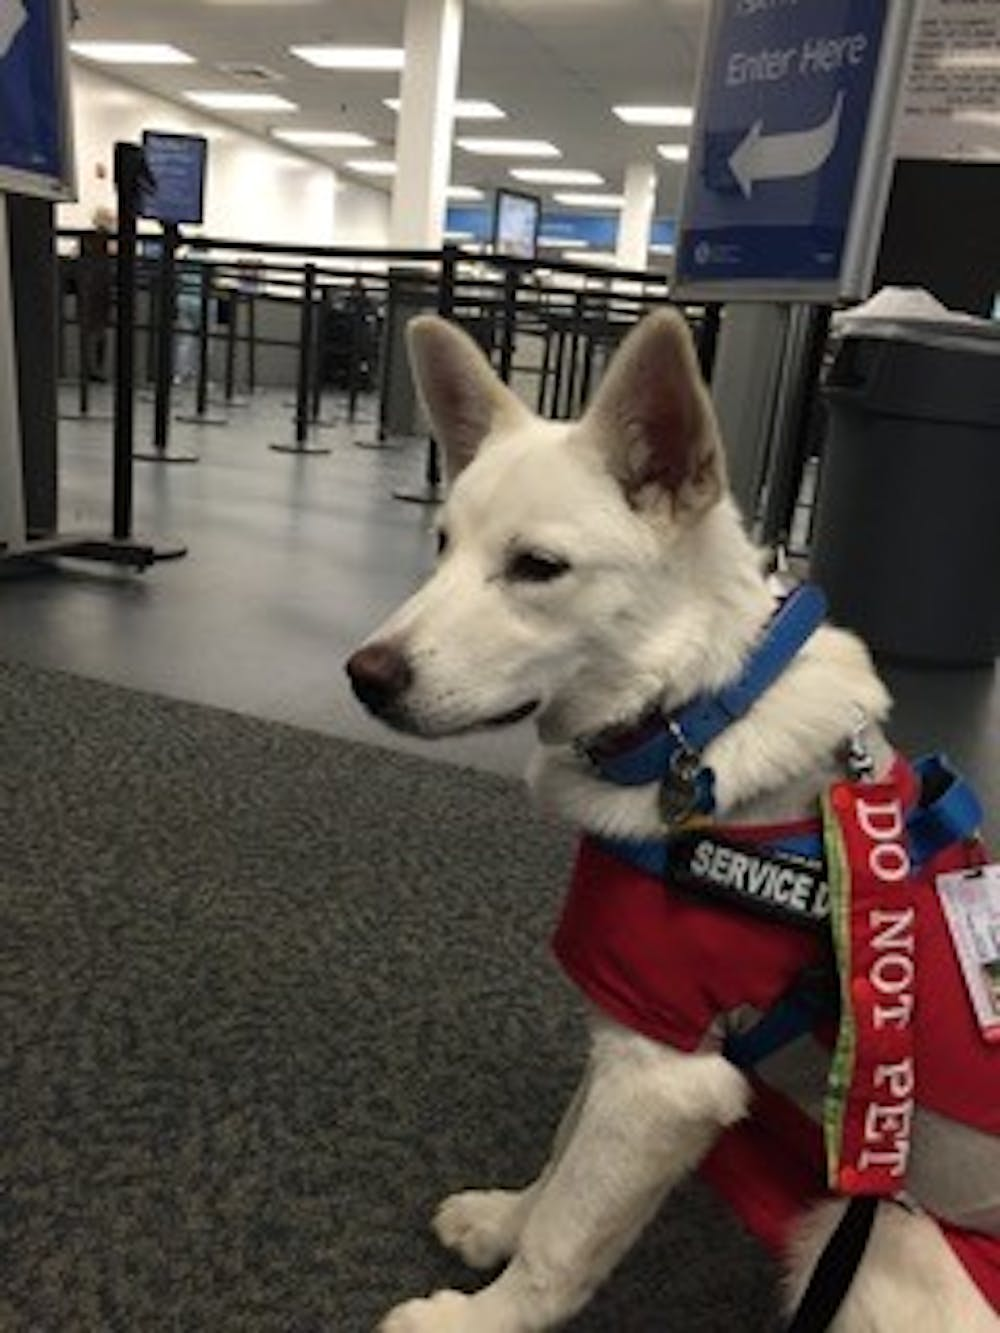 <p>Korra isa white German Shepherd puppy. Andrea Pino, a recentUNC graduate, adopted Korrato help her cope with the effects of her sexual assault. Courtesy of Andrea Pino.</p>